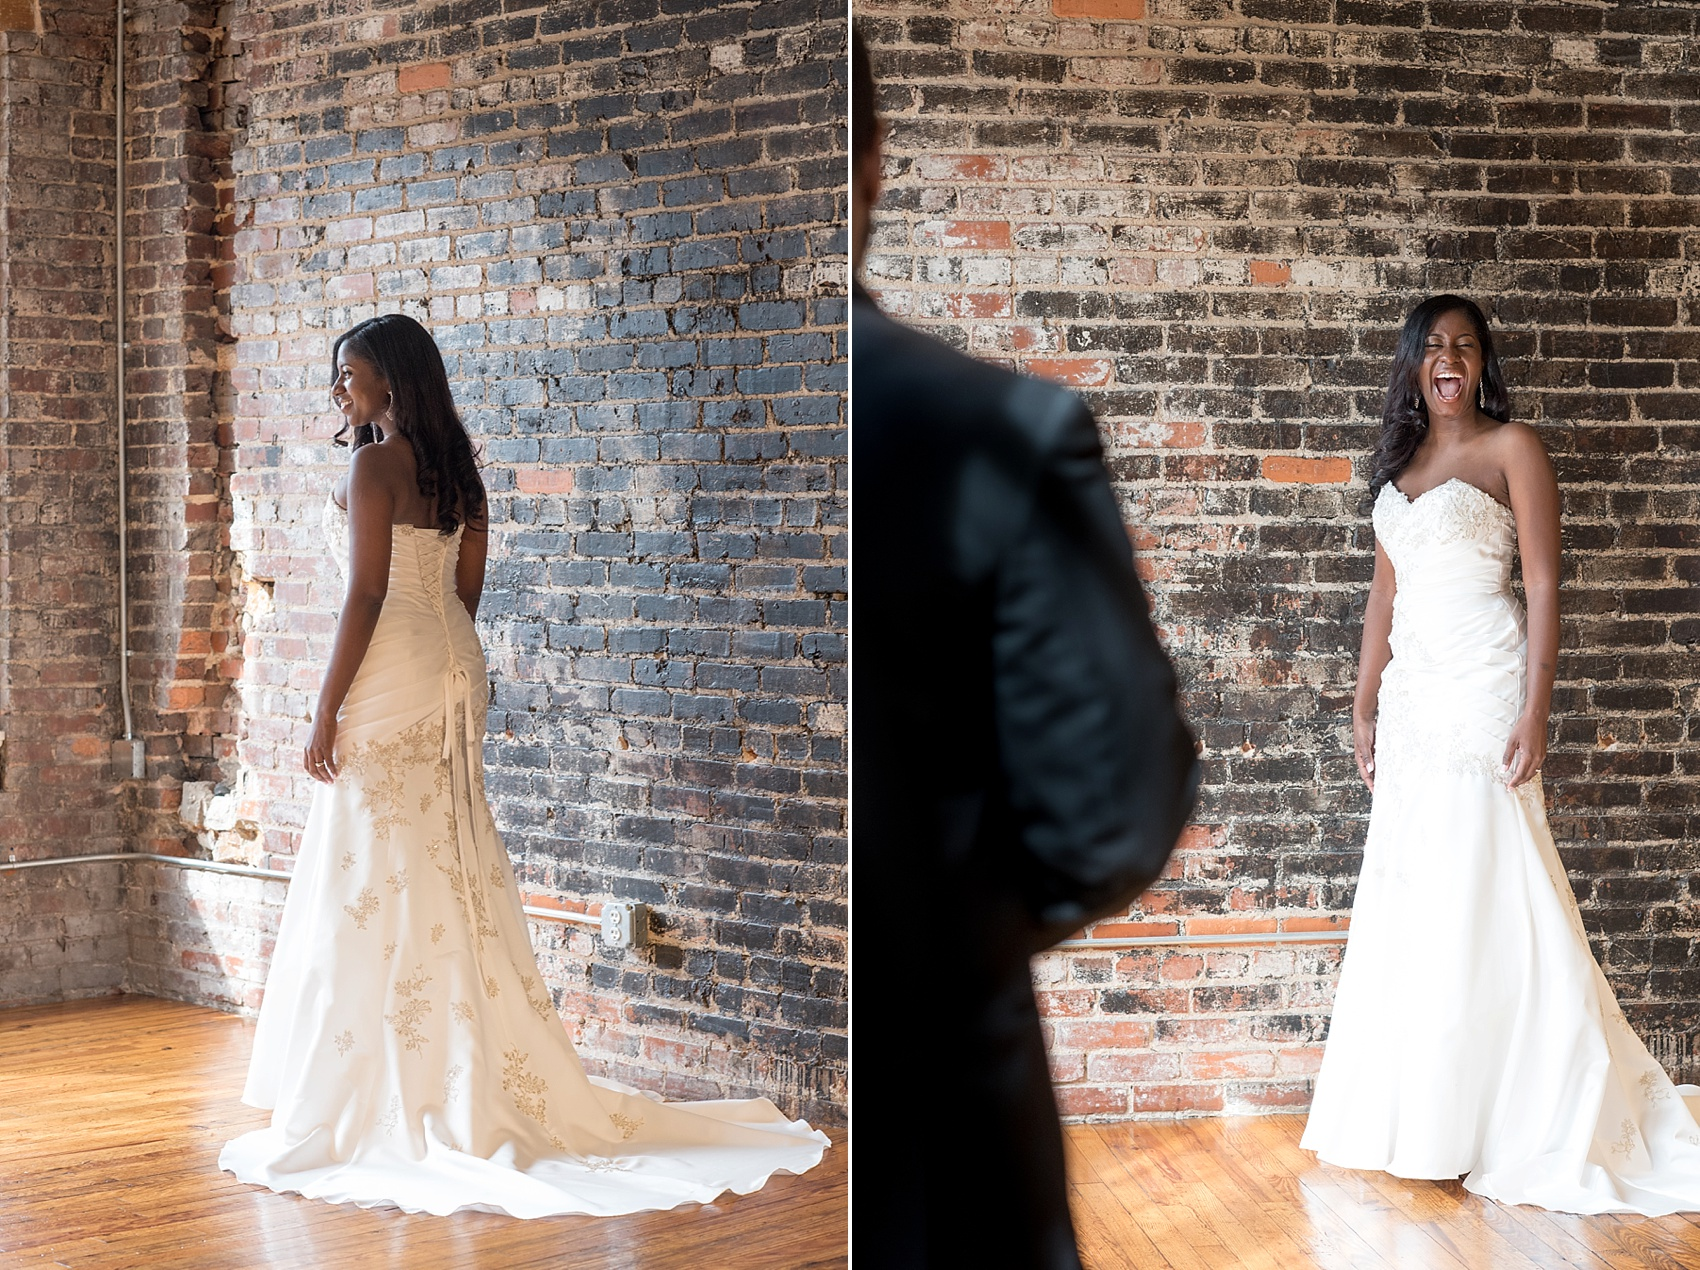 Raleigh wedding photographer Mikkel Paige Photography captures a laughing bride at The Stockroom.